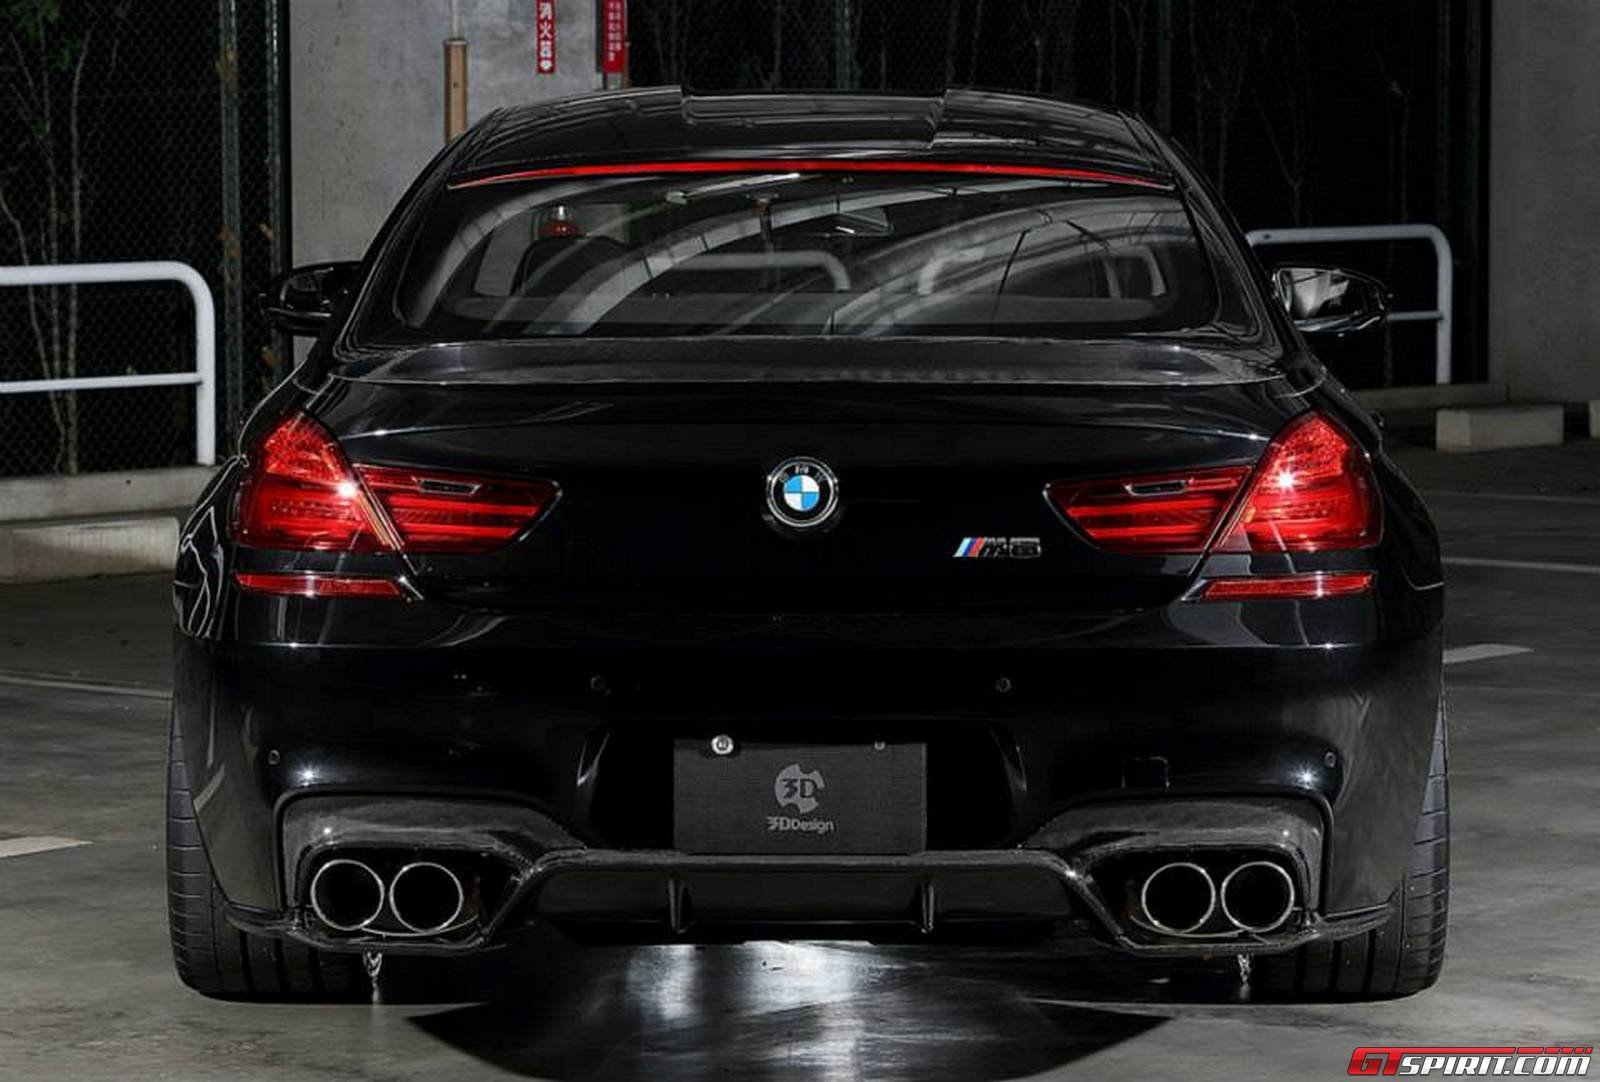 3d Design Bmw M6 Gran Coupe By Carozzeria Carbon 187 Every Tech